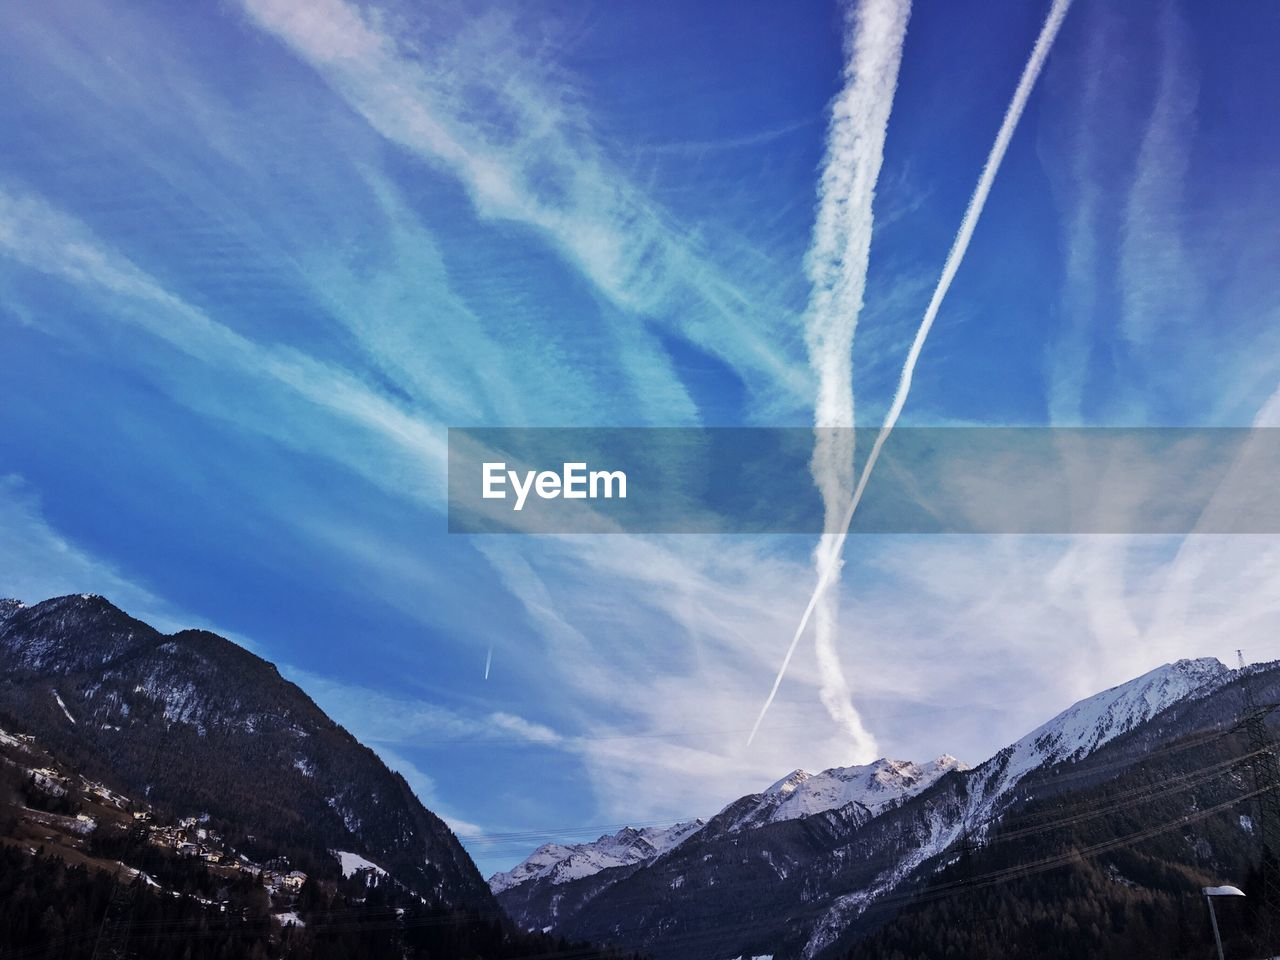 Low angle view of vapor trails in sky over rocky mountains